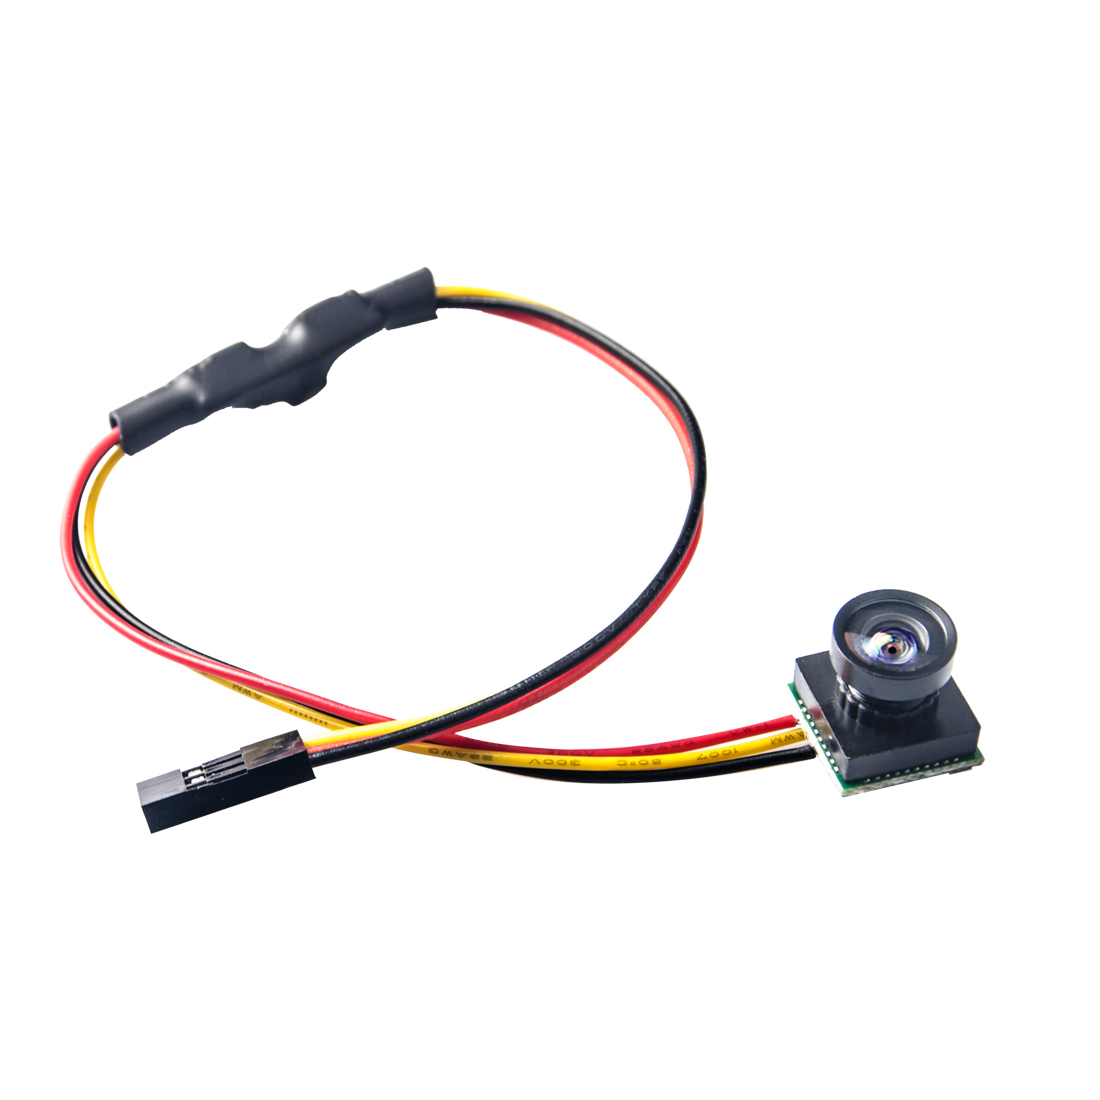 sony ccd fpv camera Ultra-low Power lens for Quadcopter